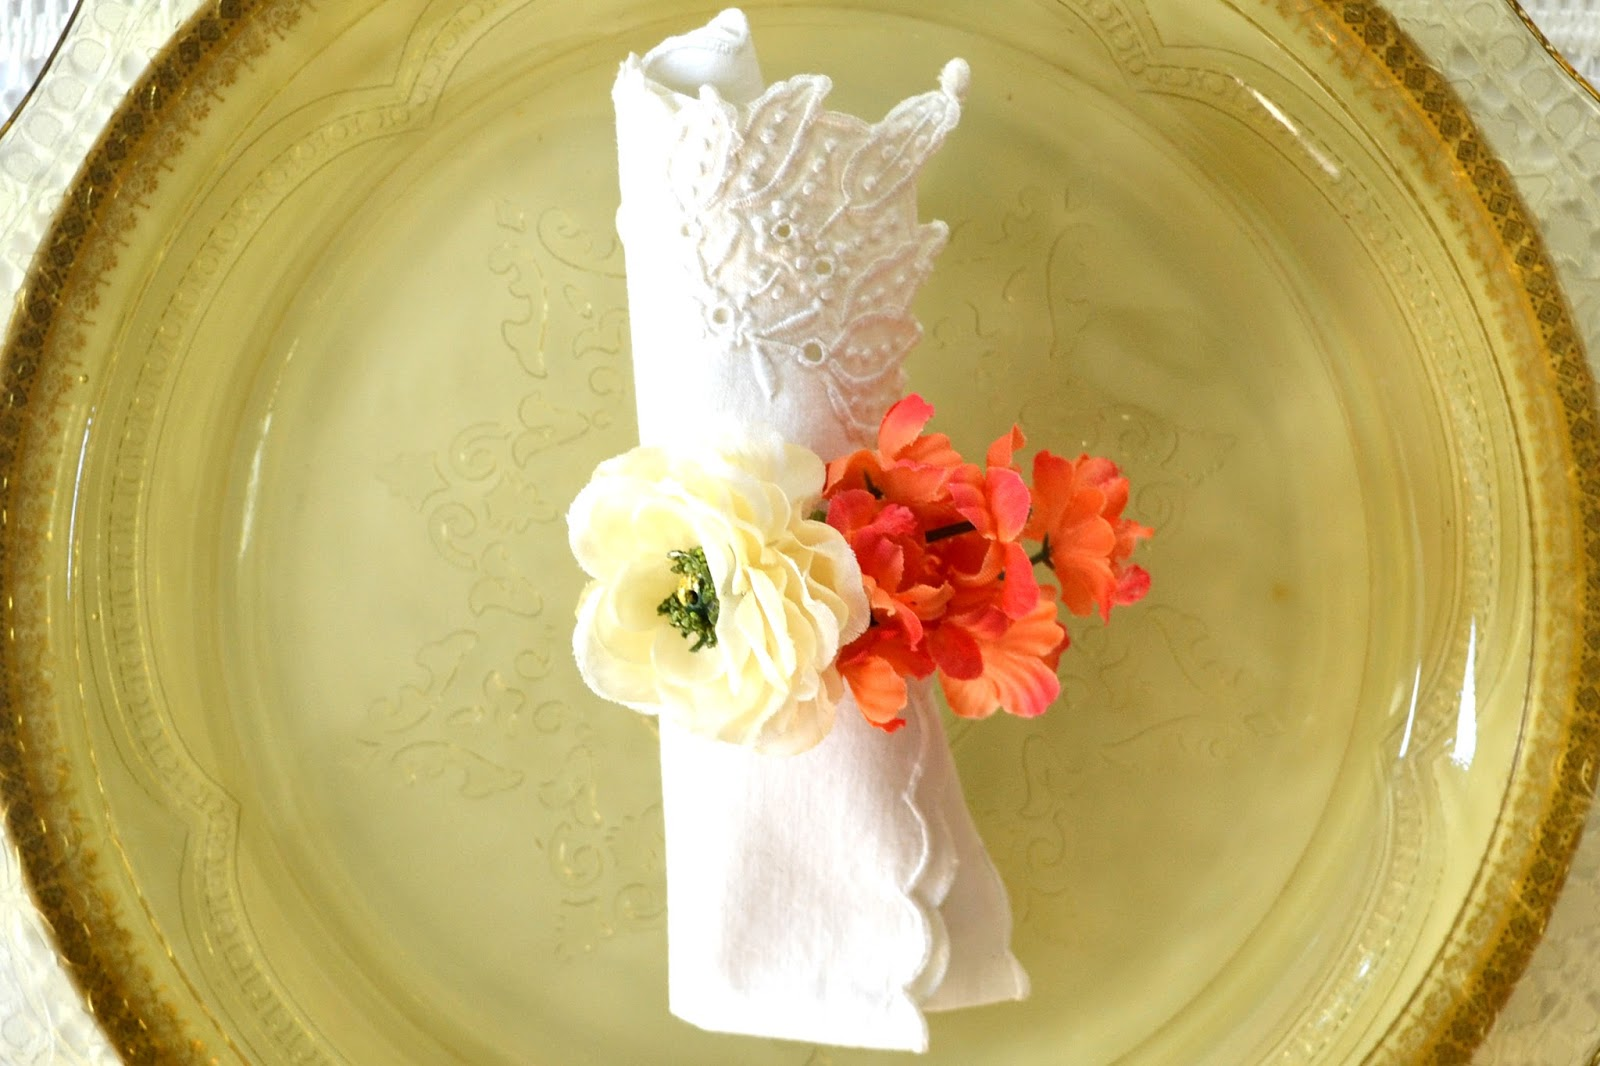 Attic Lace Pretty Bloom Napkin Rings